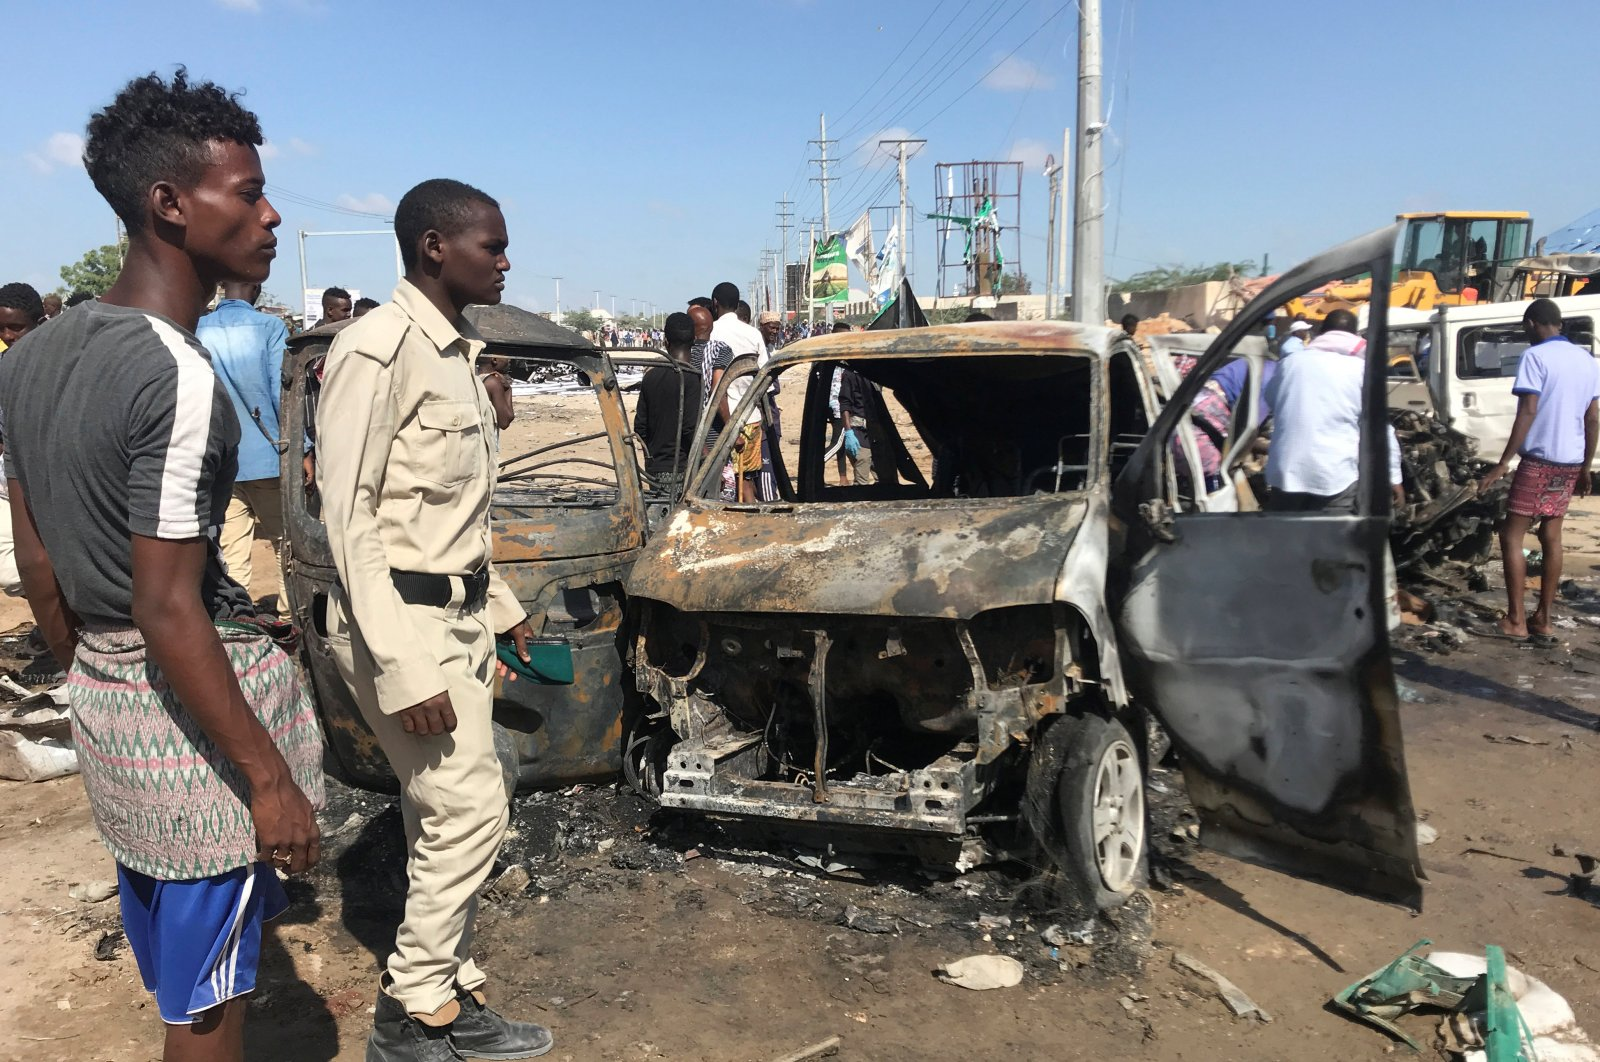 Somali security forces assess the scene of a car bomb explosion at a checkpoint, Mogadishu, Dec. 28, 2019. (REUTERS Photo)